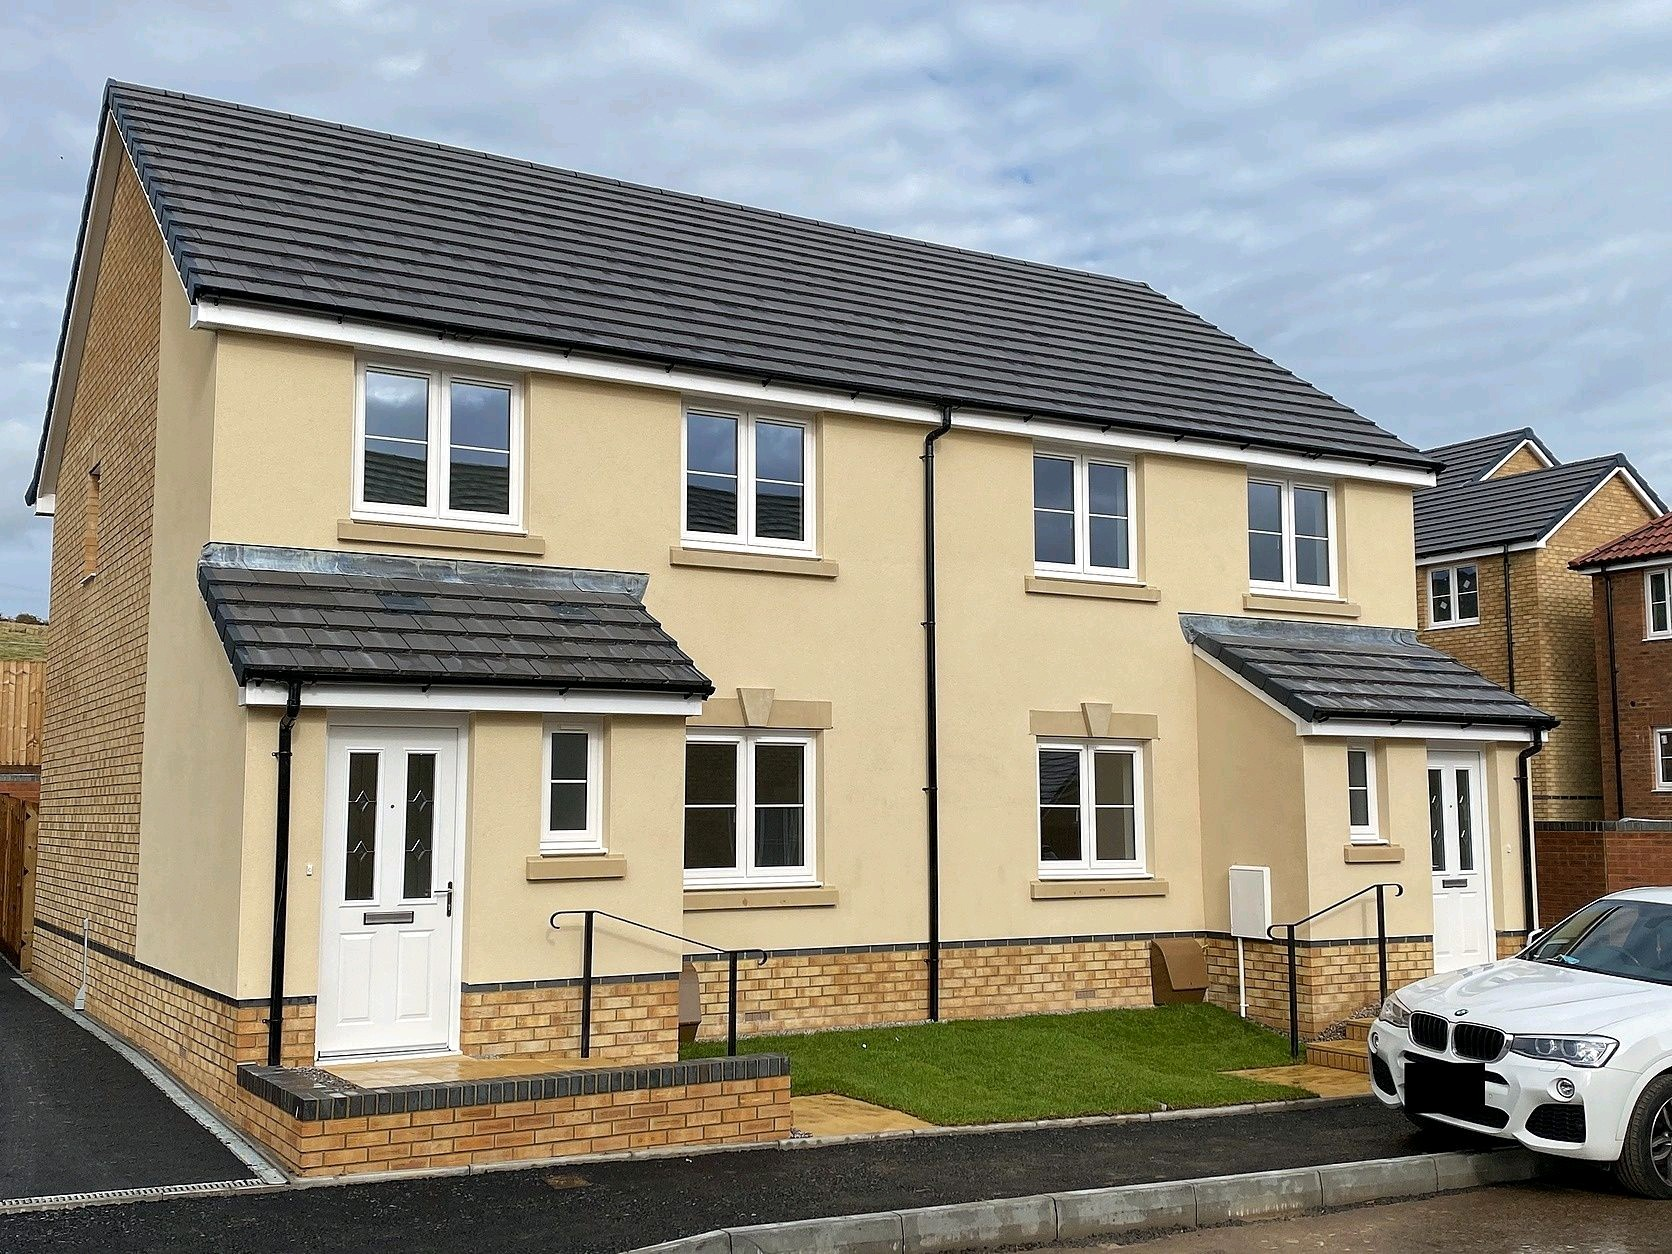 Homes in Bedwas